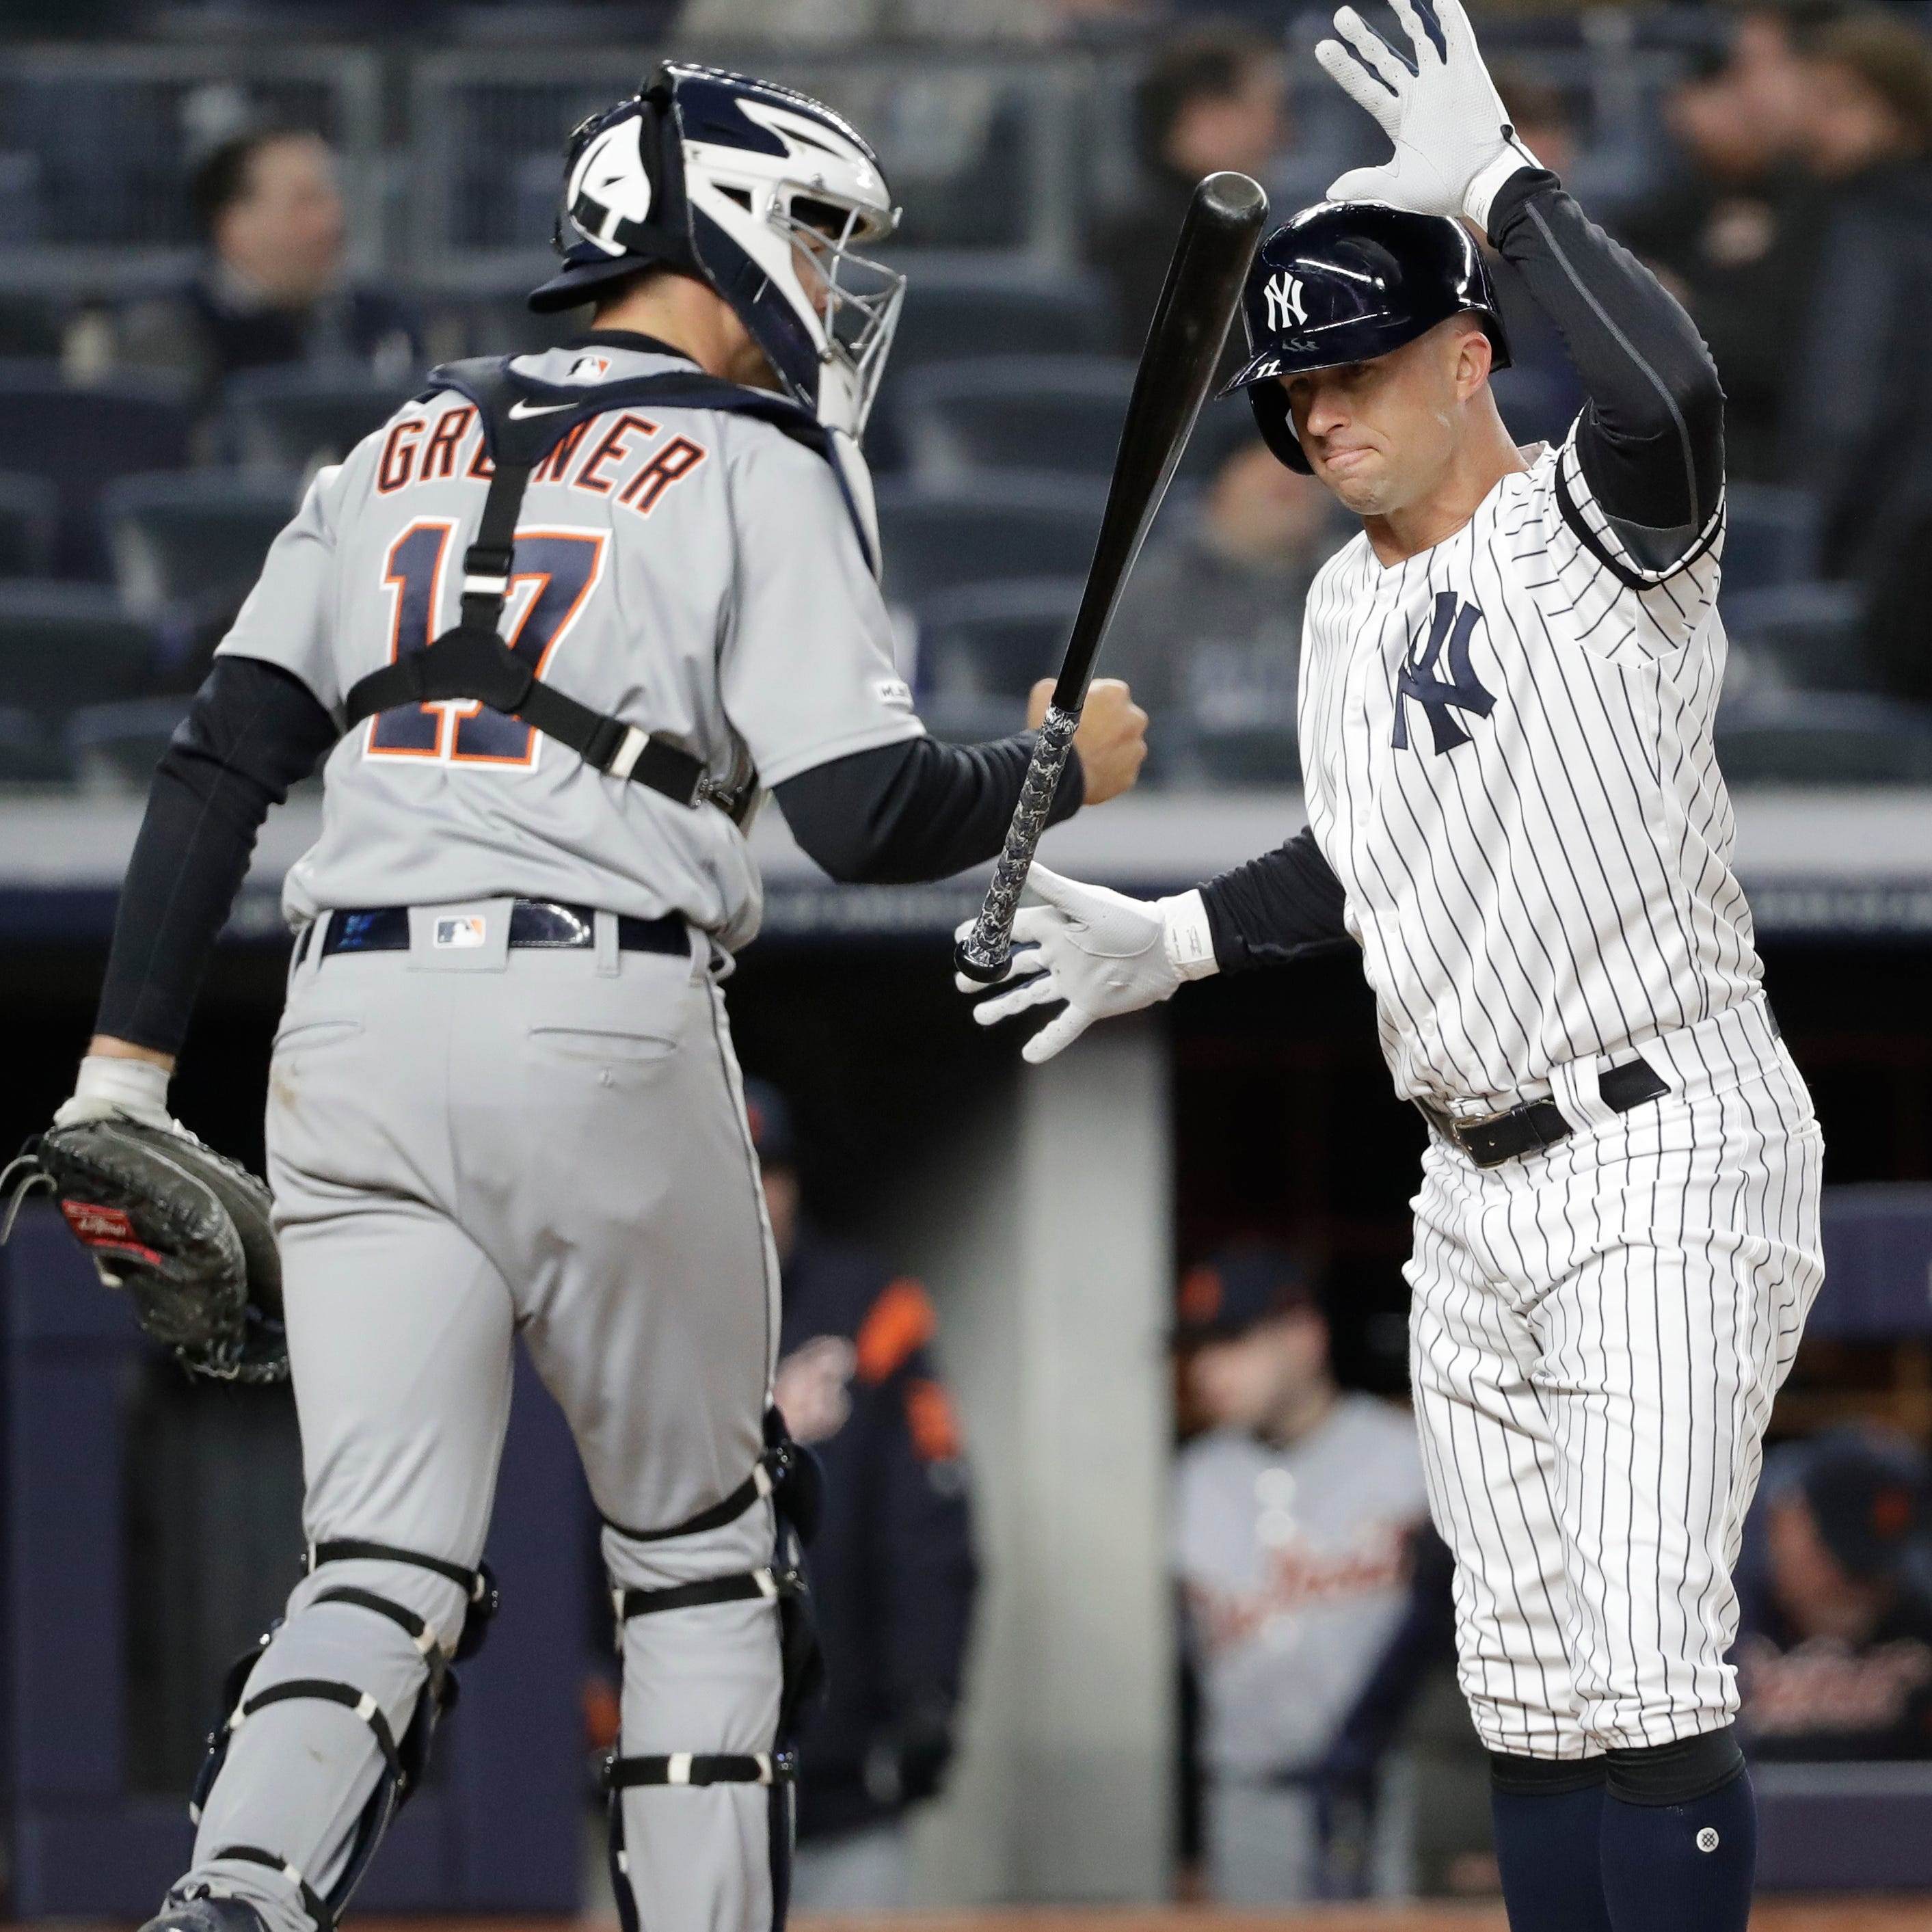 Here are three Yankees points after their third loss of the 2019 season